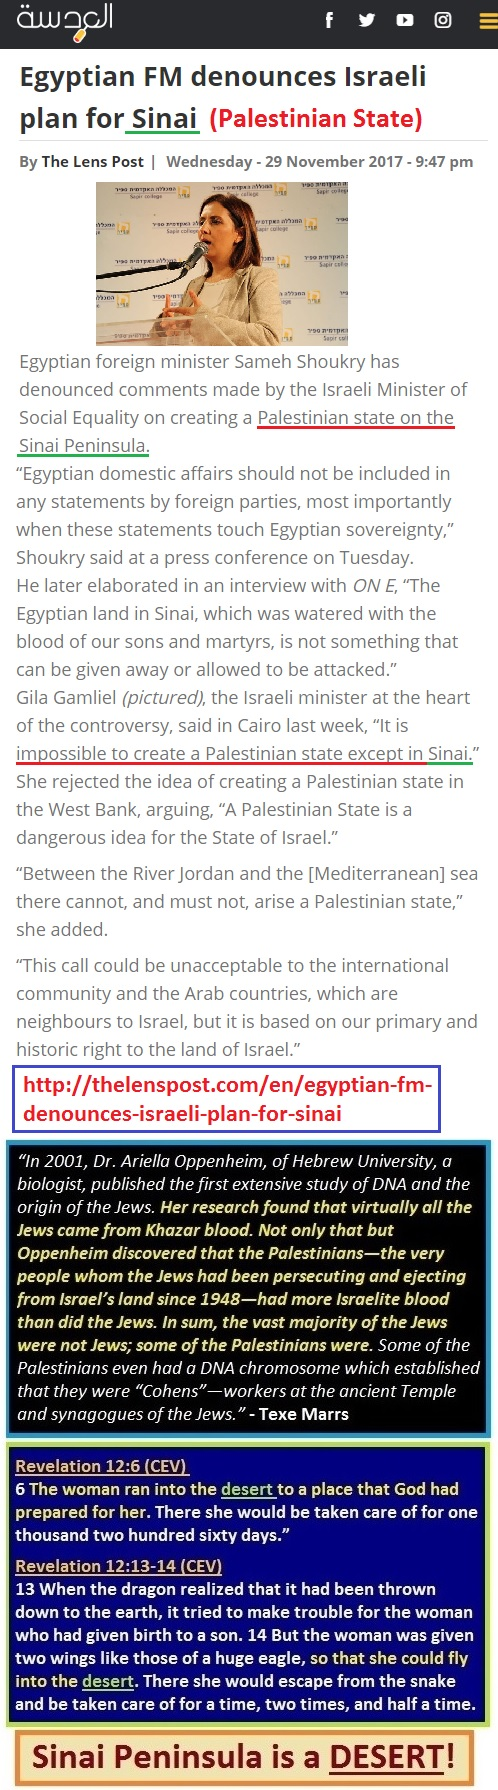 https://www.middleeastmonitor.com/20171128-egypt-slams-israeli-ministers-call-to-resettle-palestinians-in-sinai/